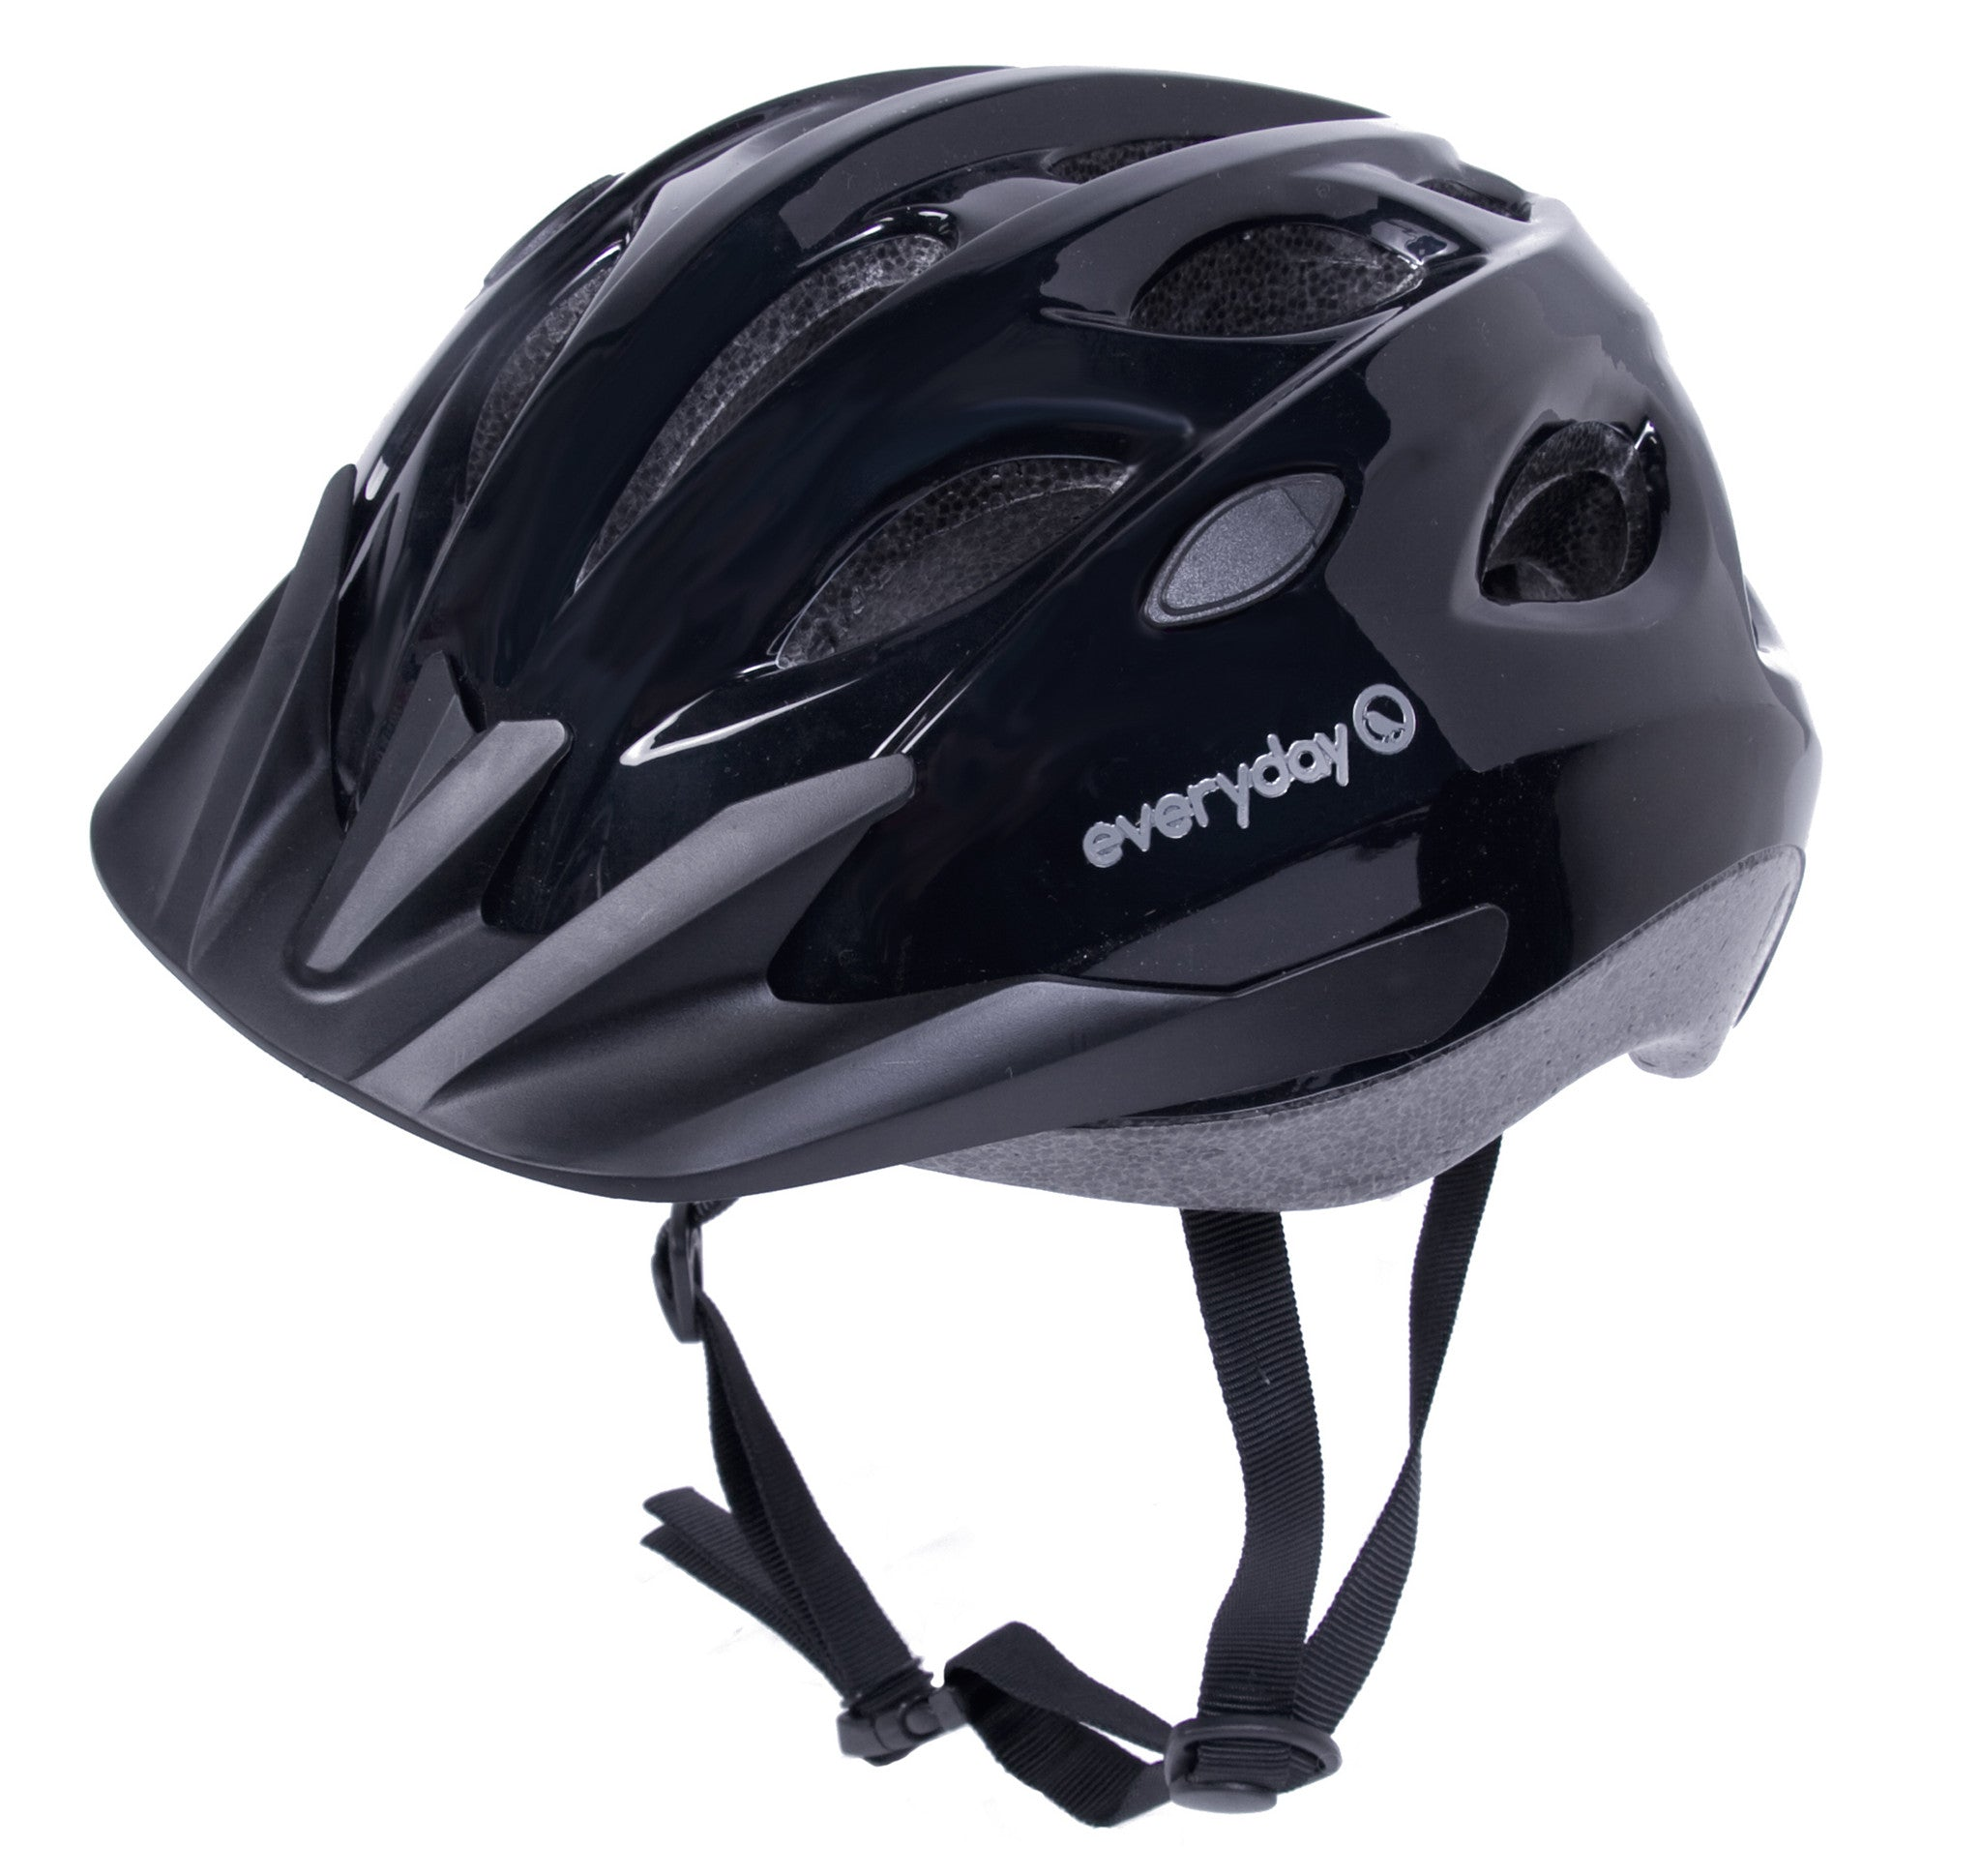 Helmet, Mens S/M (Size 54-58cm) (SOLD OUT)